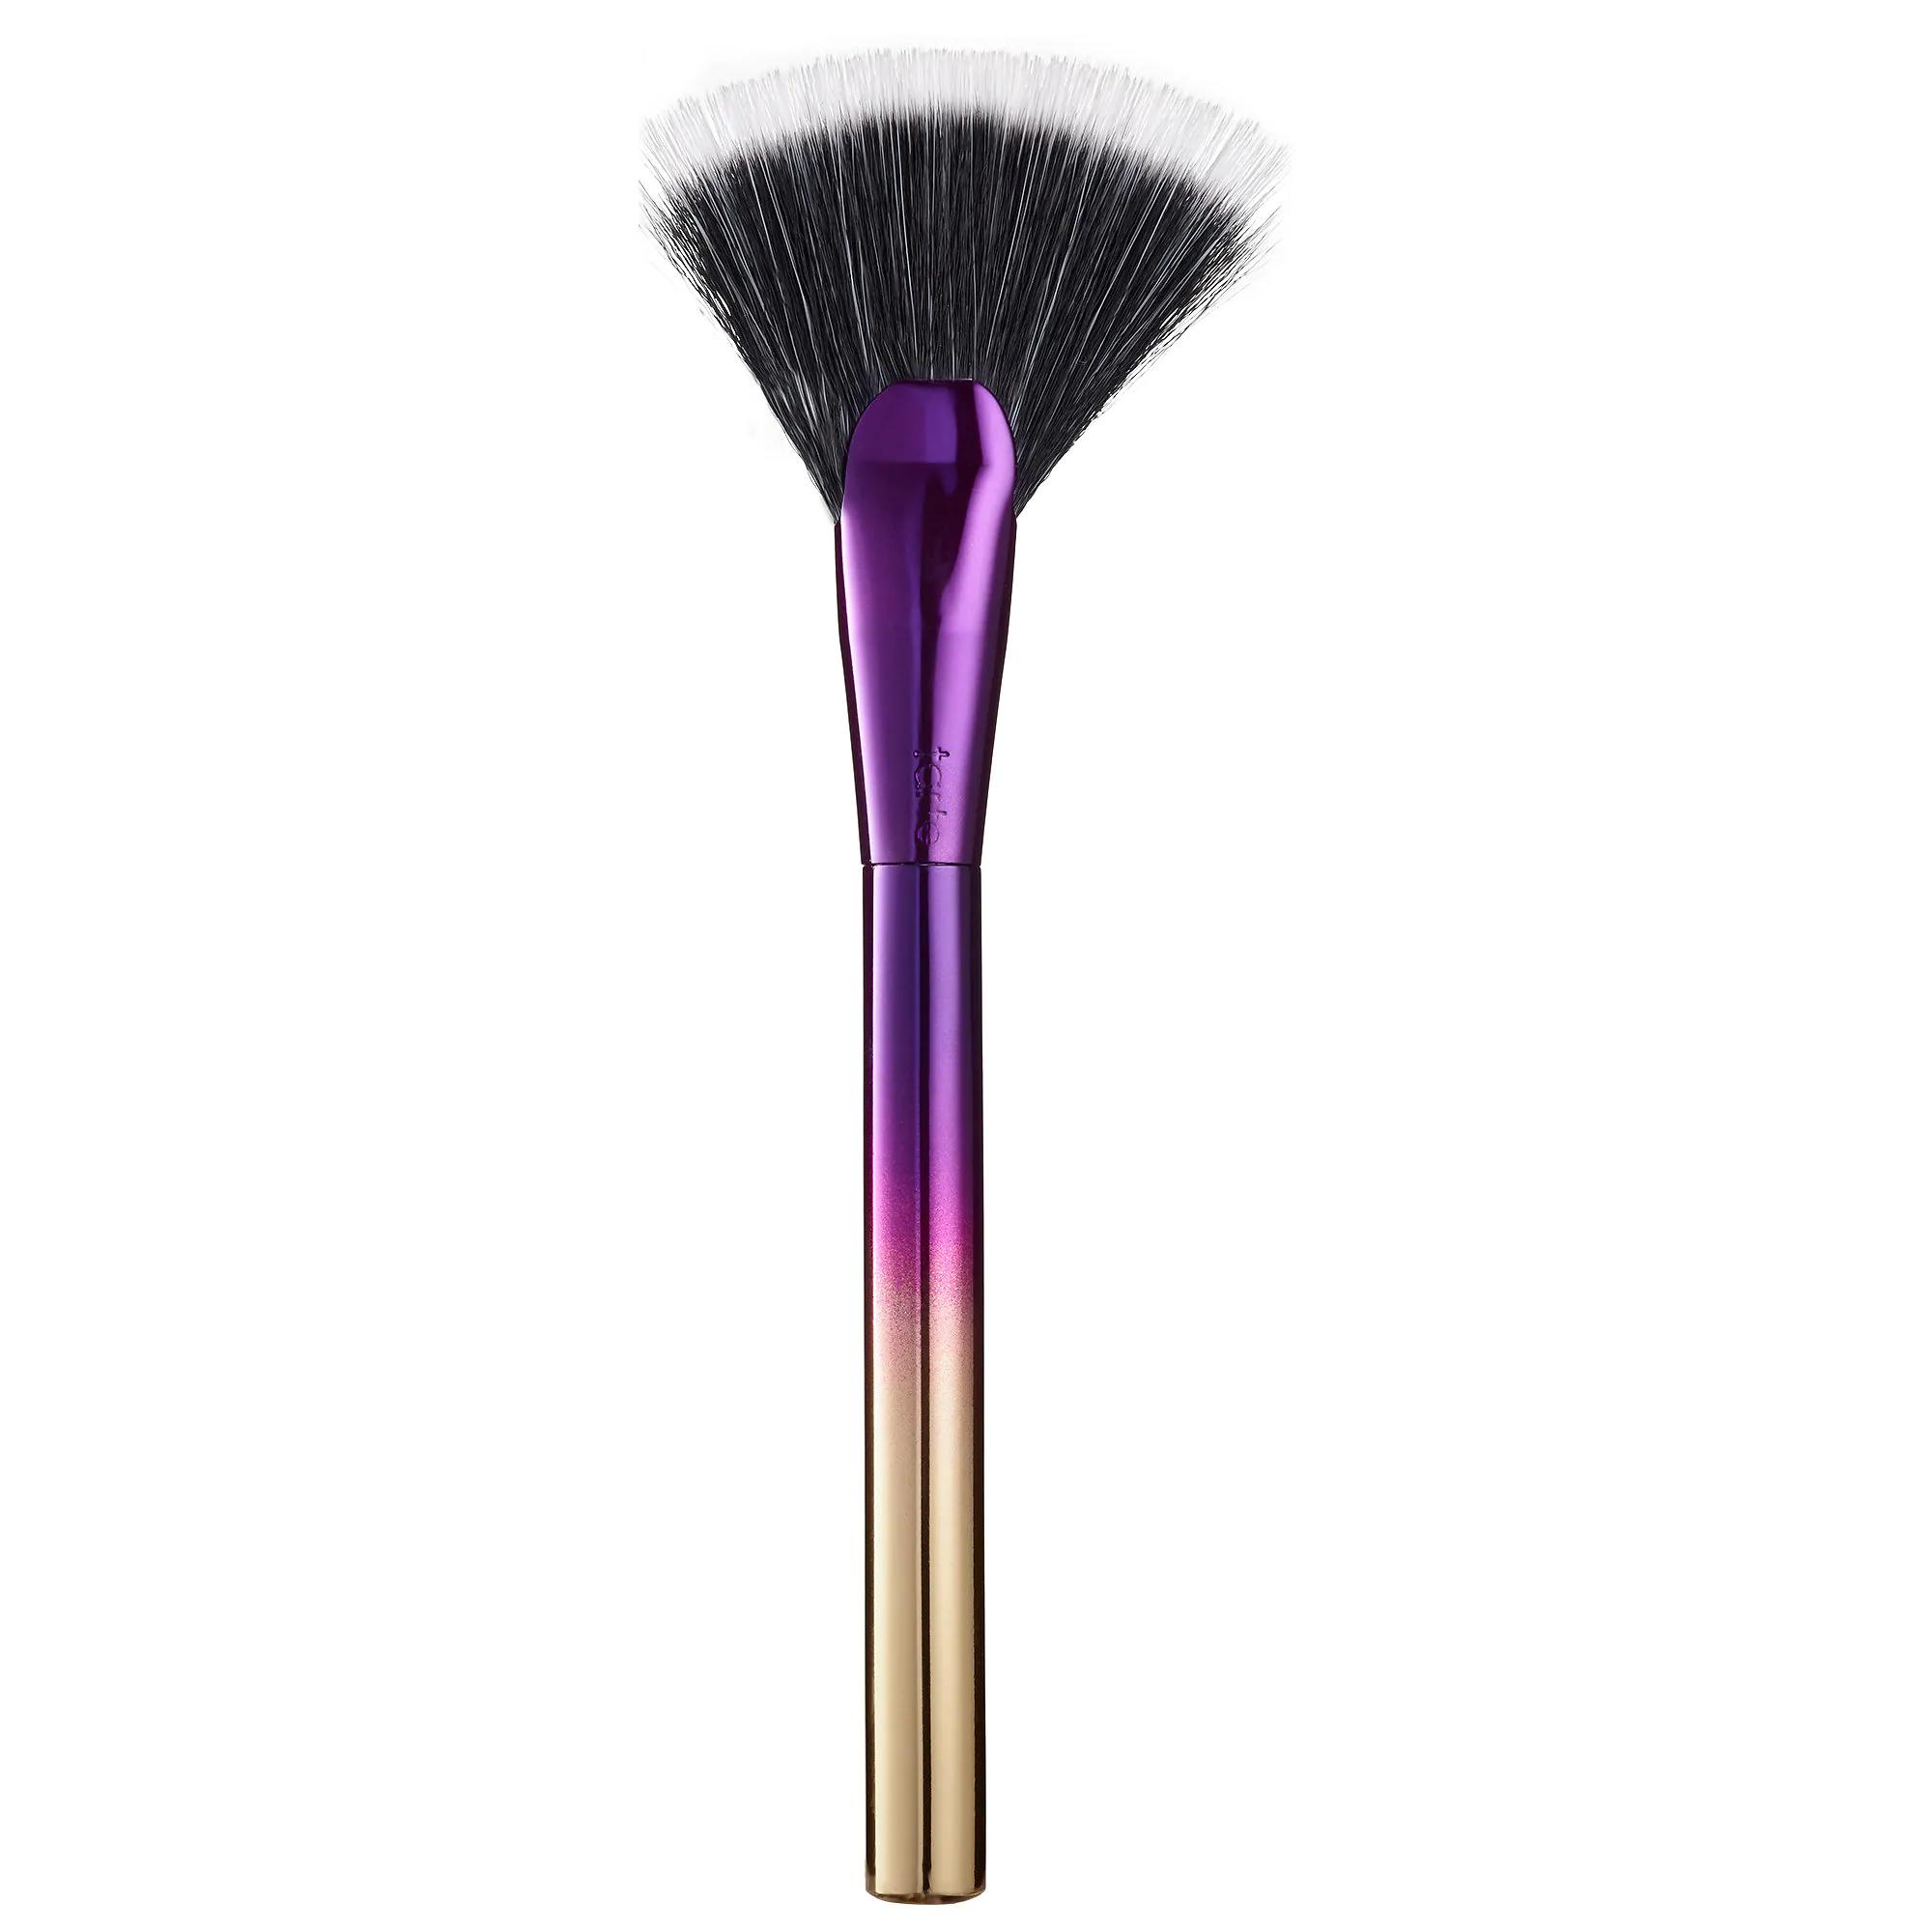 Tarte Fan Brush Under The Sea Collection